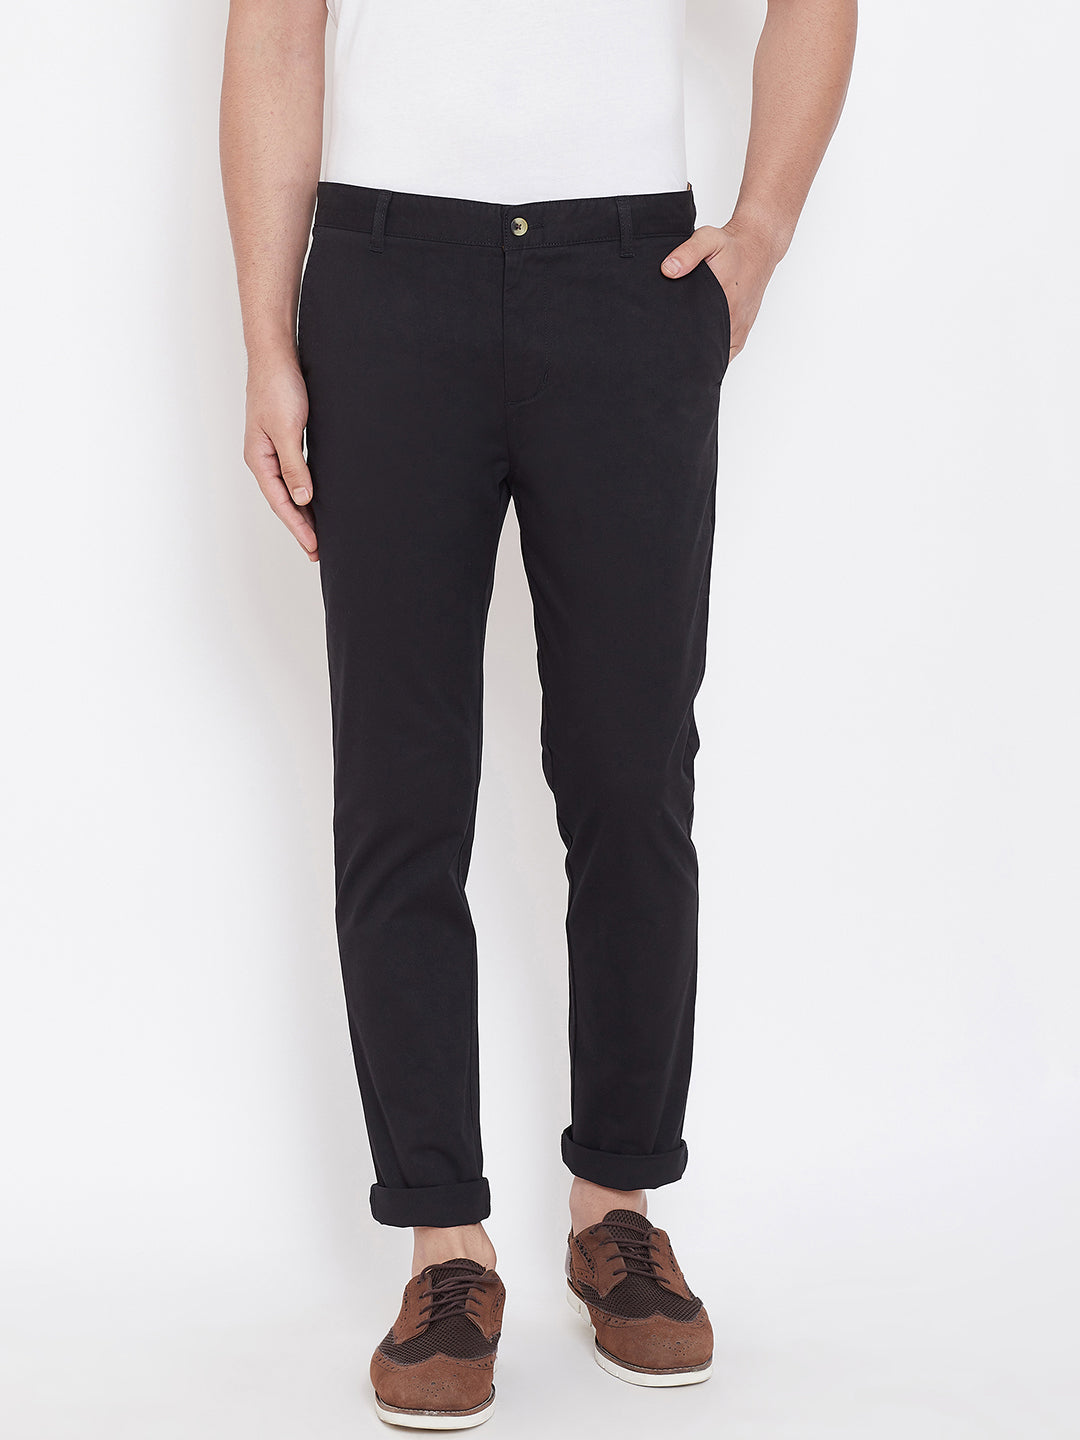 Men's Black Stretch Washed Casual Tailored Fit Chinos